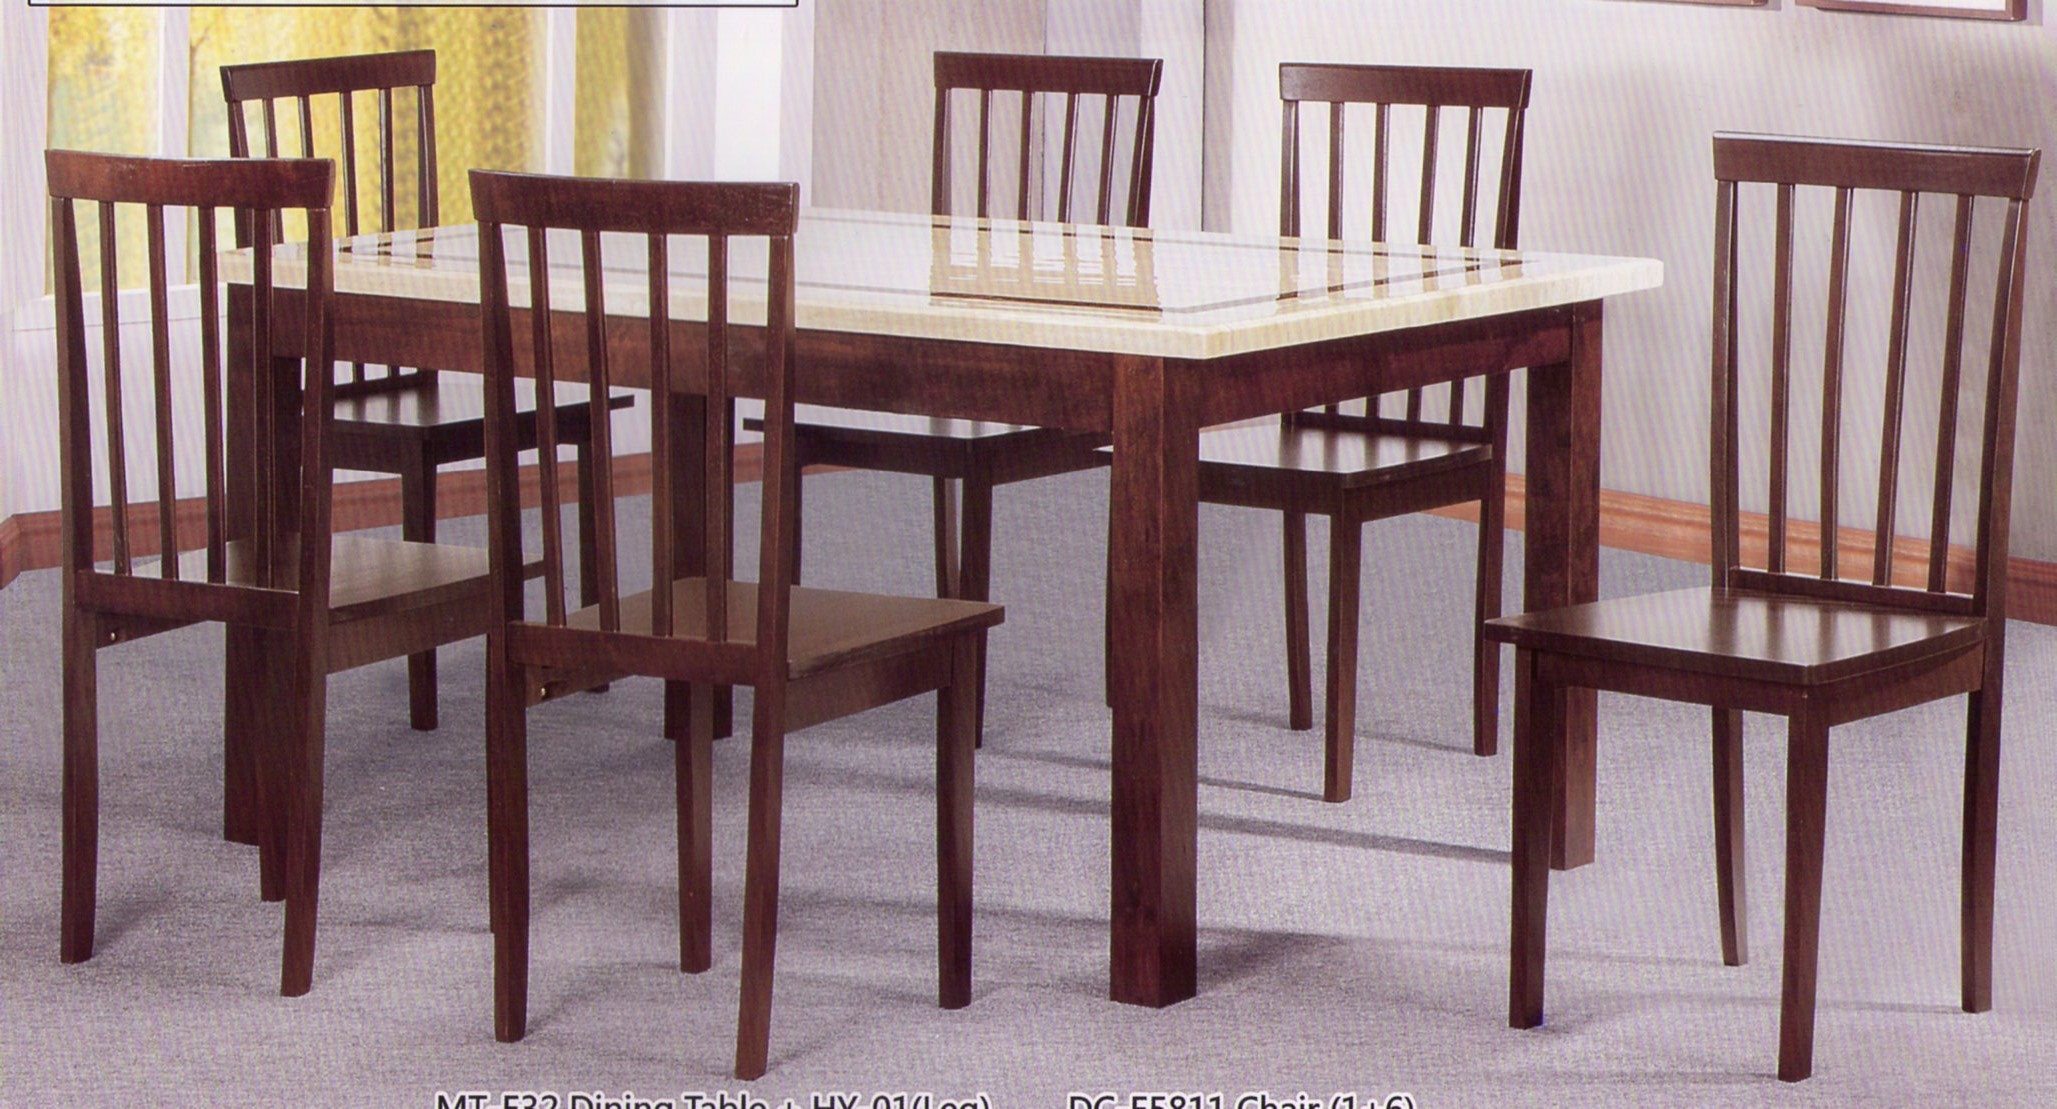 New Dining Table Set Malaysia Light of Dining Room : MT E32 022 from lightofdiningroom.com size 2057 x 1109 jpeg 508kB